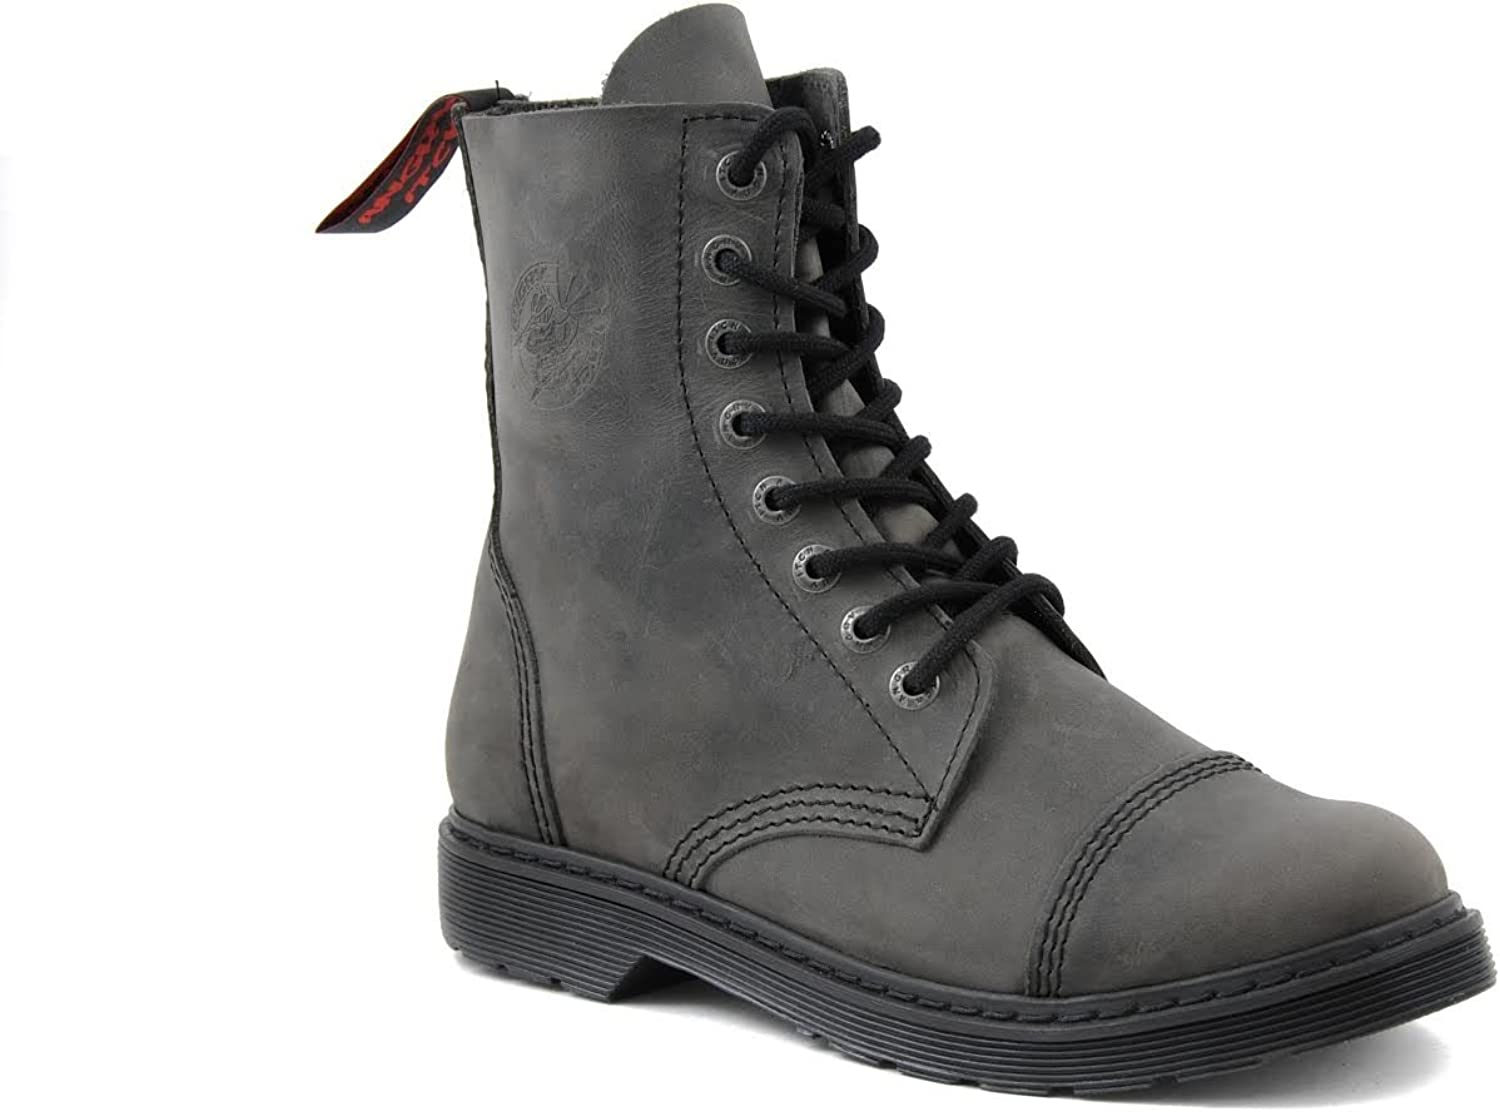 Angry Itch Combat Boots Vintage Grey Leather Soft Unisex Ladies Men's 8 Eye Military Army Punk Ranger